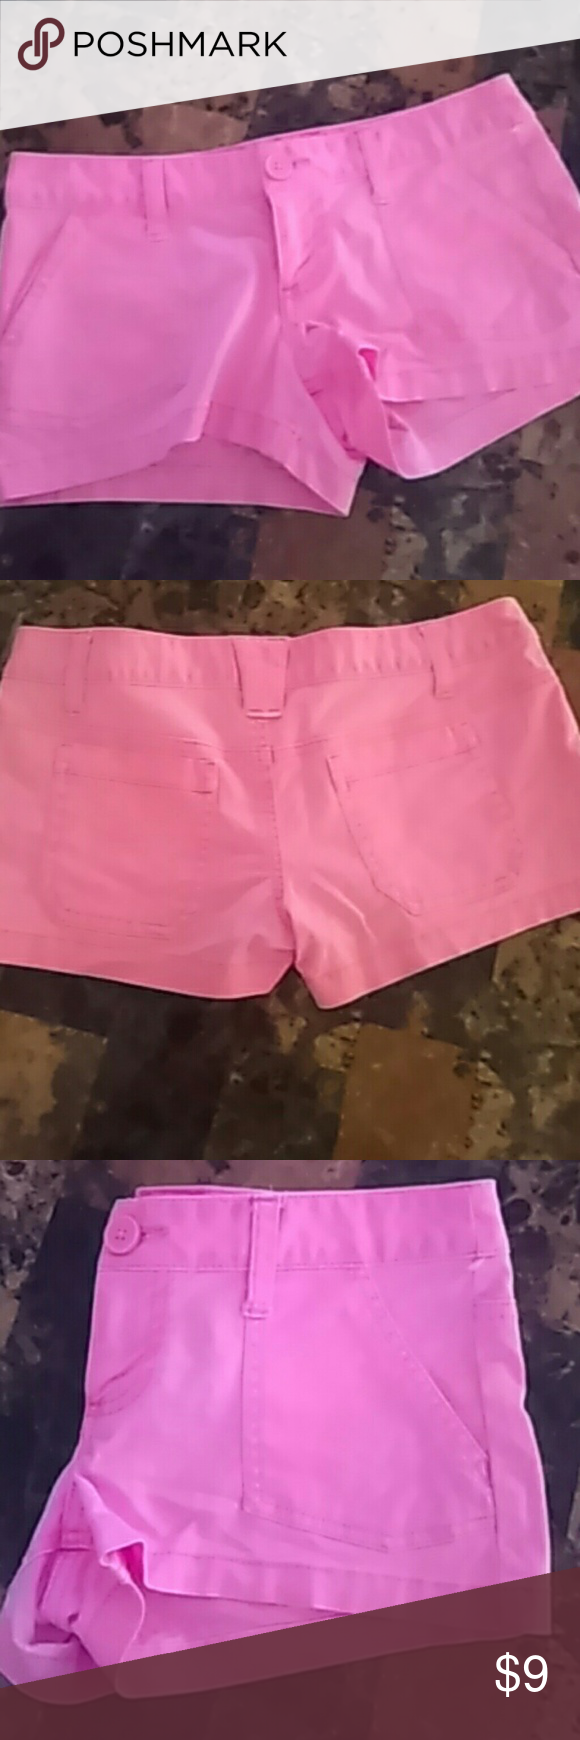 Mossimo Supply Co Light Hot Pink shorts in great condition Size 1 Mossimo Supply Co. Shorts Skorts